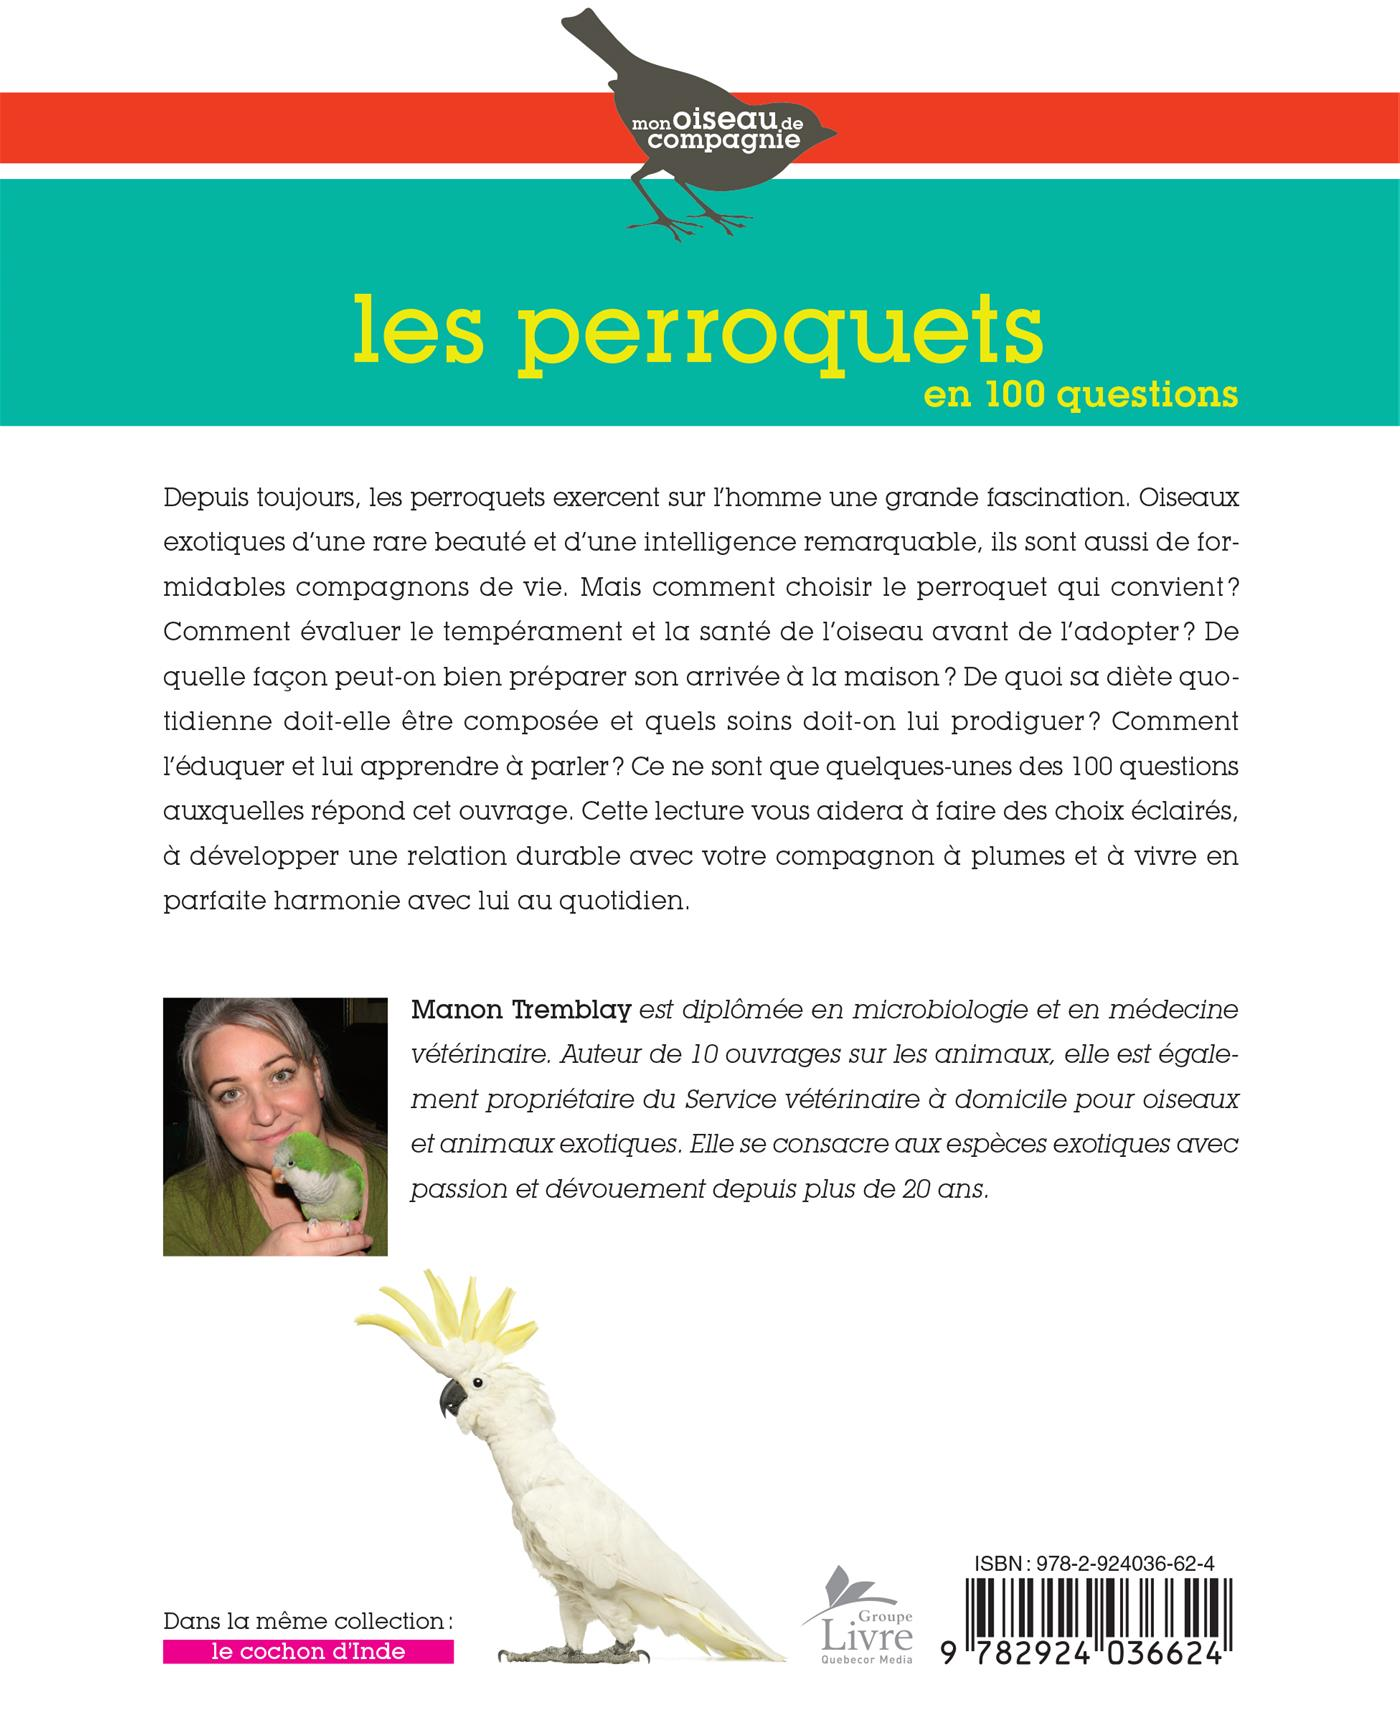 Perroquets en 100 questions (Les) - Manon Tremblay revers